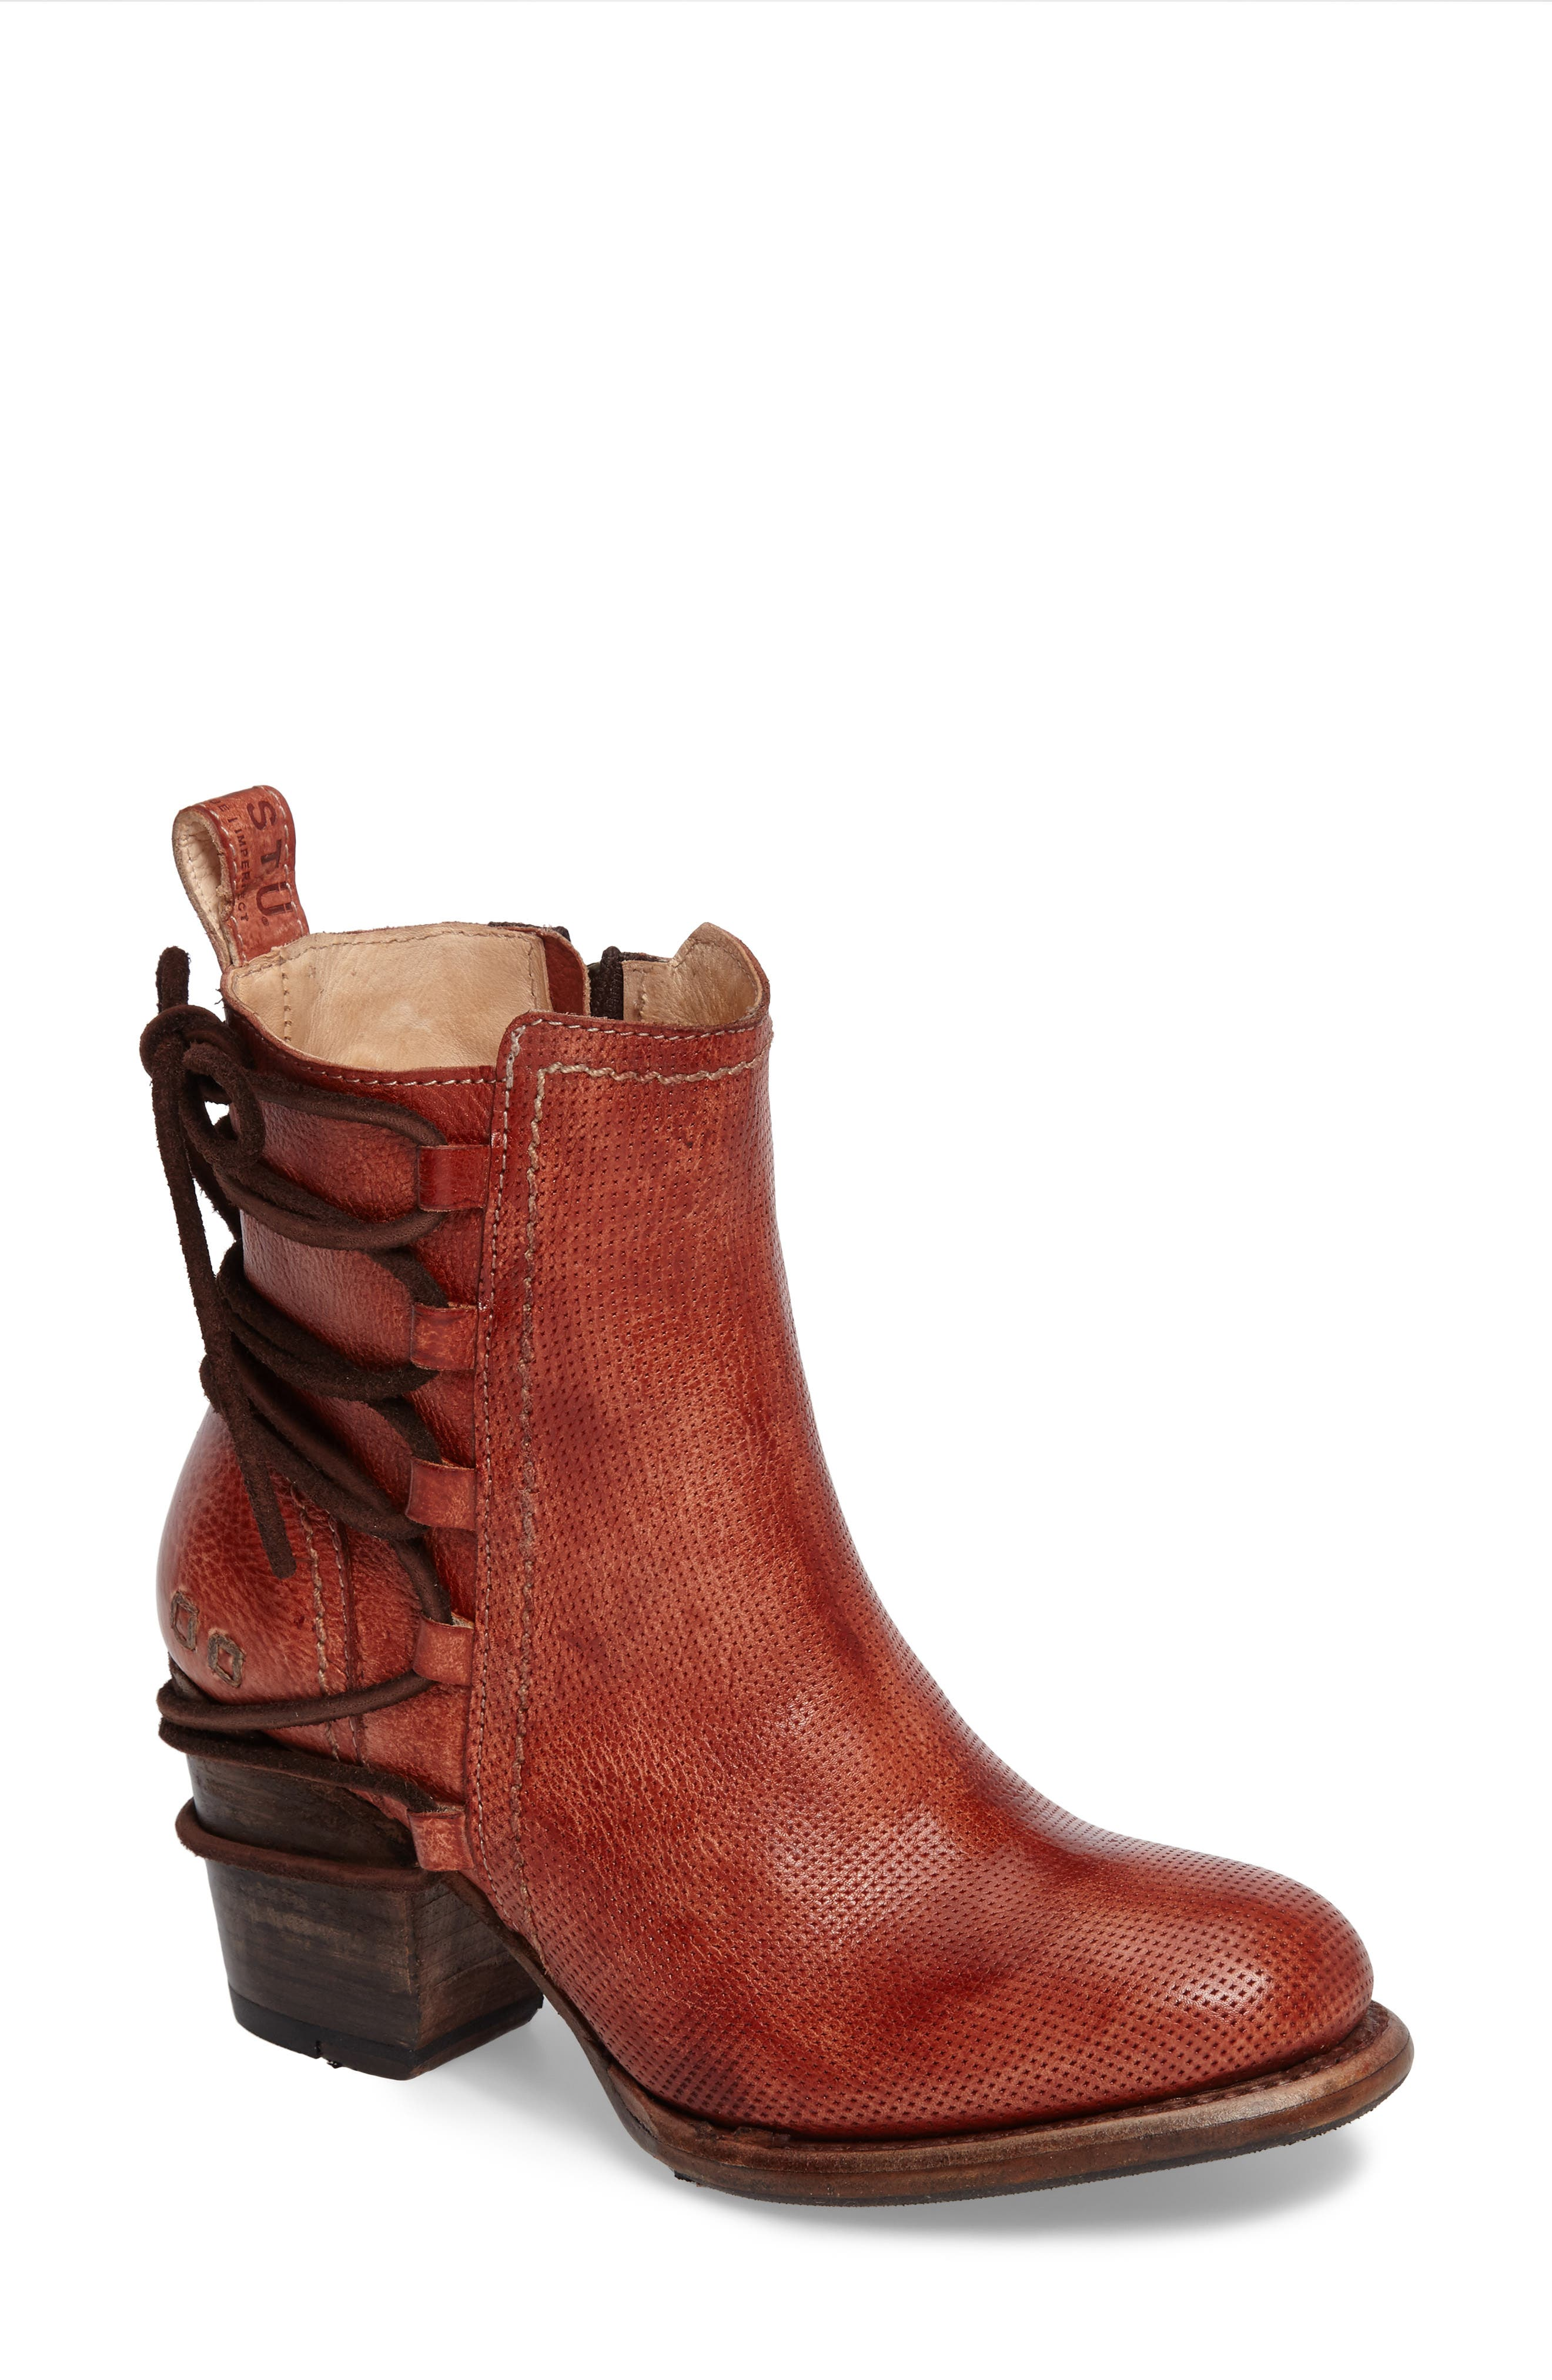 Blaire Bootie,                         Main,                         color, ADOBE DRIFTWOOD